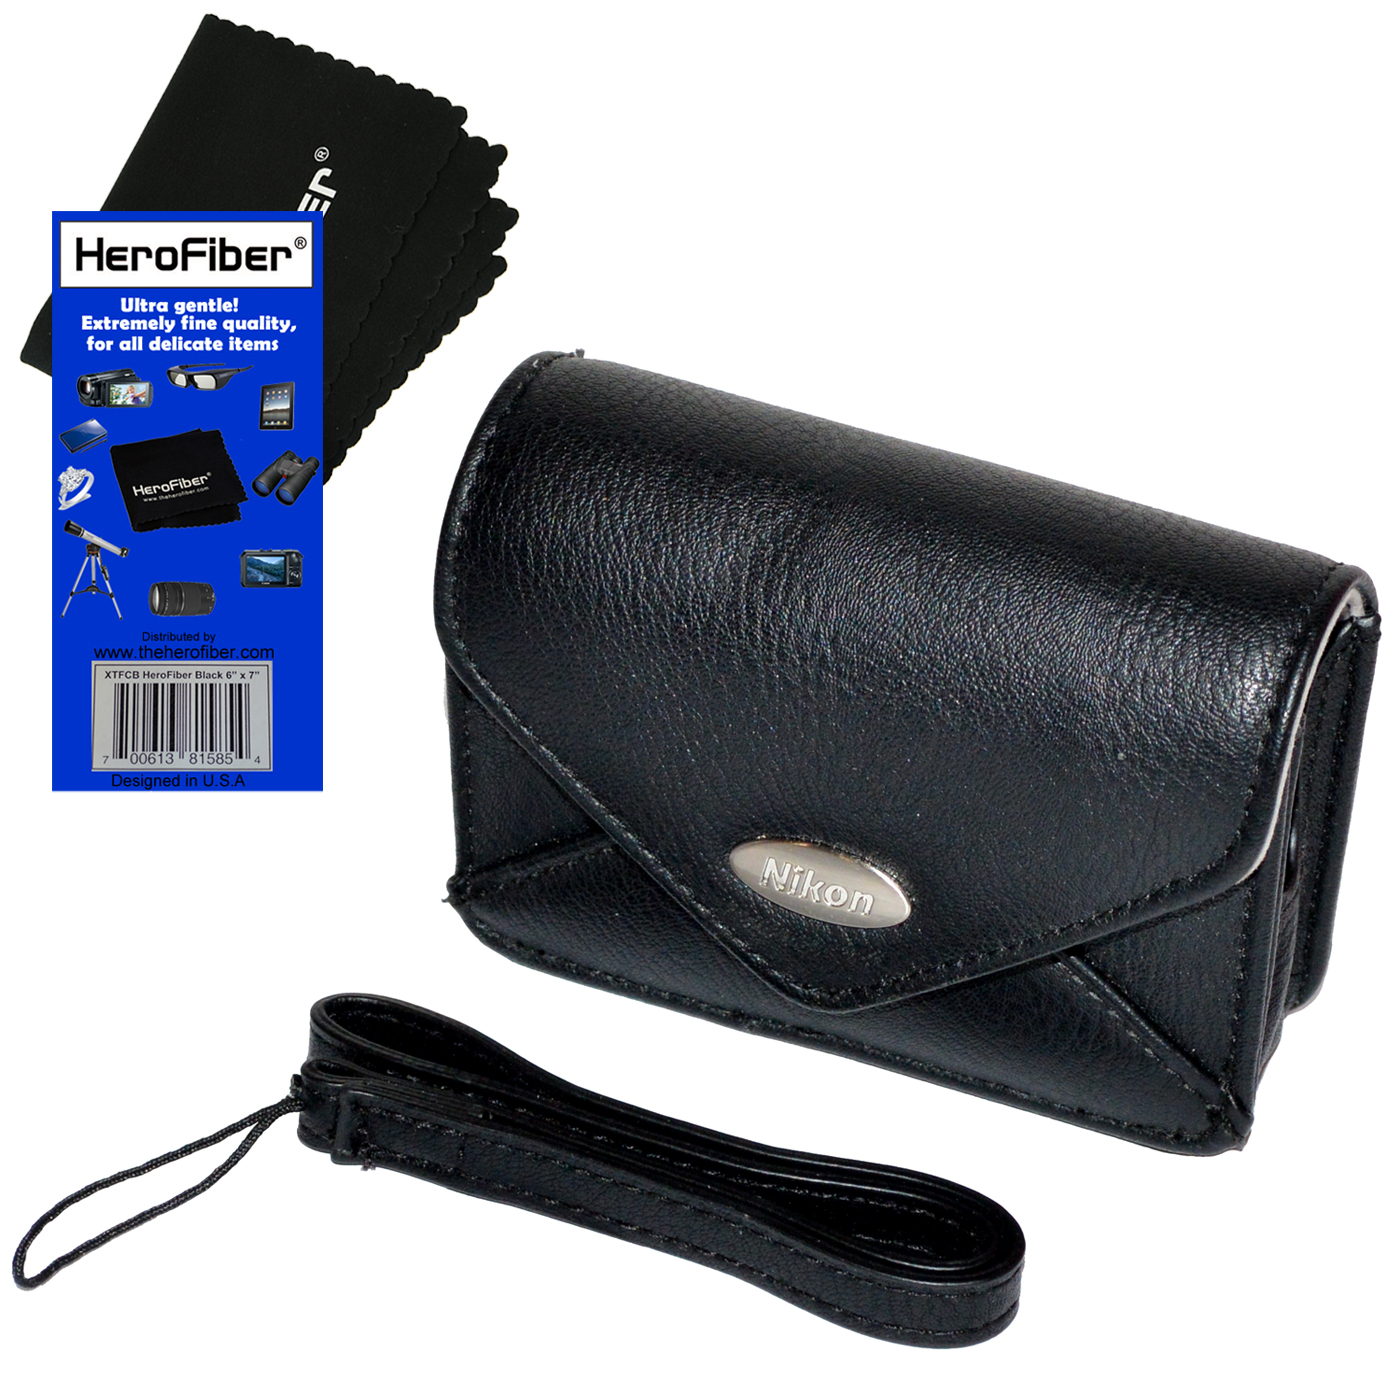 Nikon Leather Like Carrying Case with Wrist Strap for Nikon Coolpix A10, A100, A300, L31, L32, S3100, S3200, S3300, S3500, S3600 & S3700 Cameras + HeroFiber® Ultra Gentle Cleaning Cloth